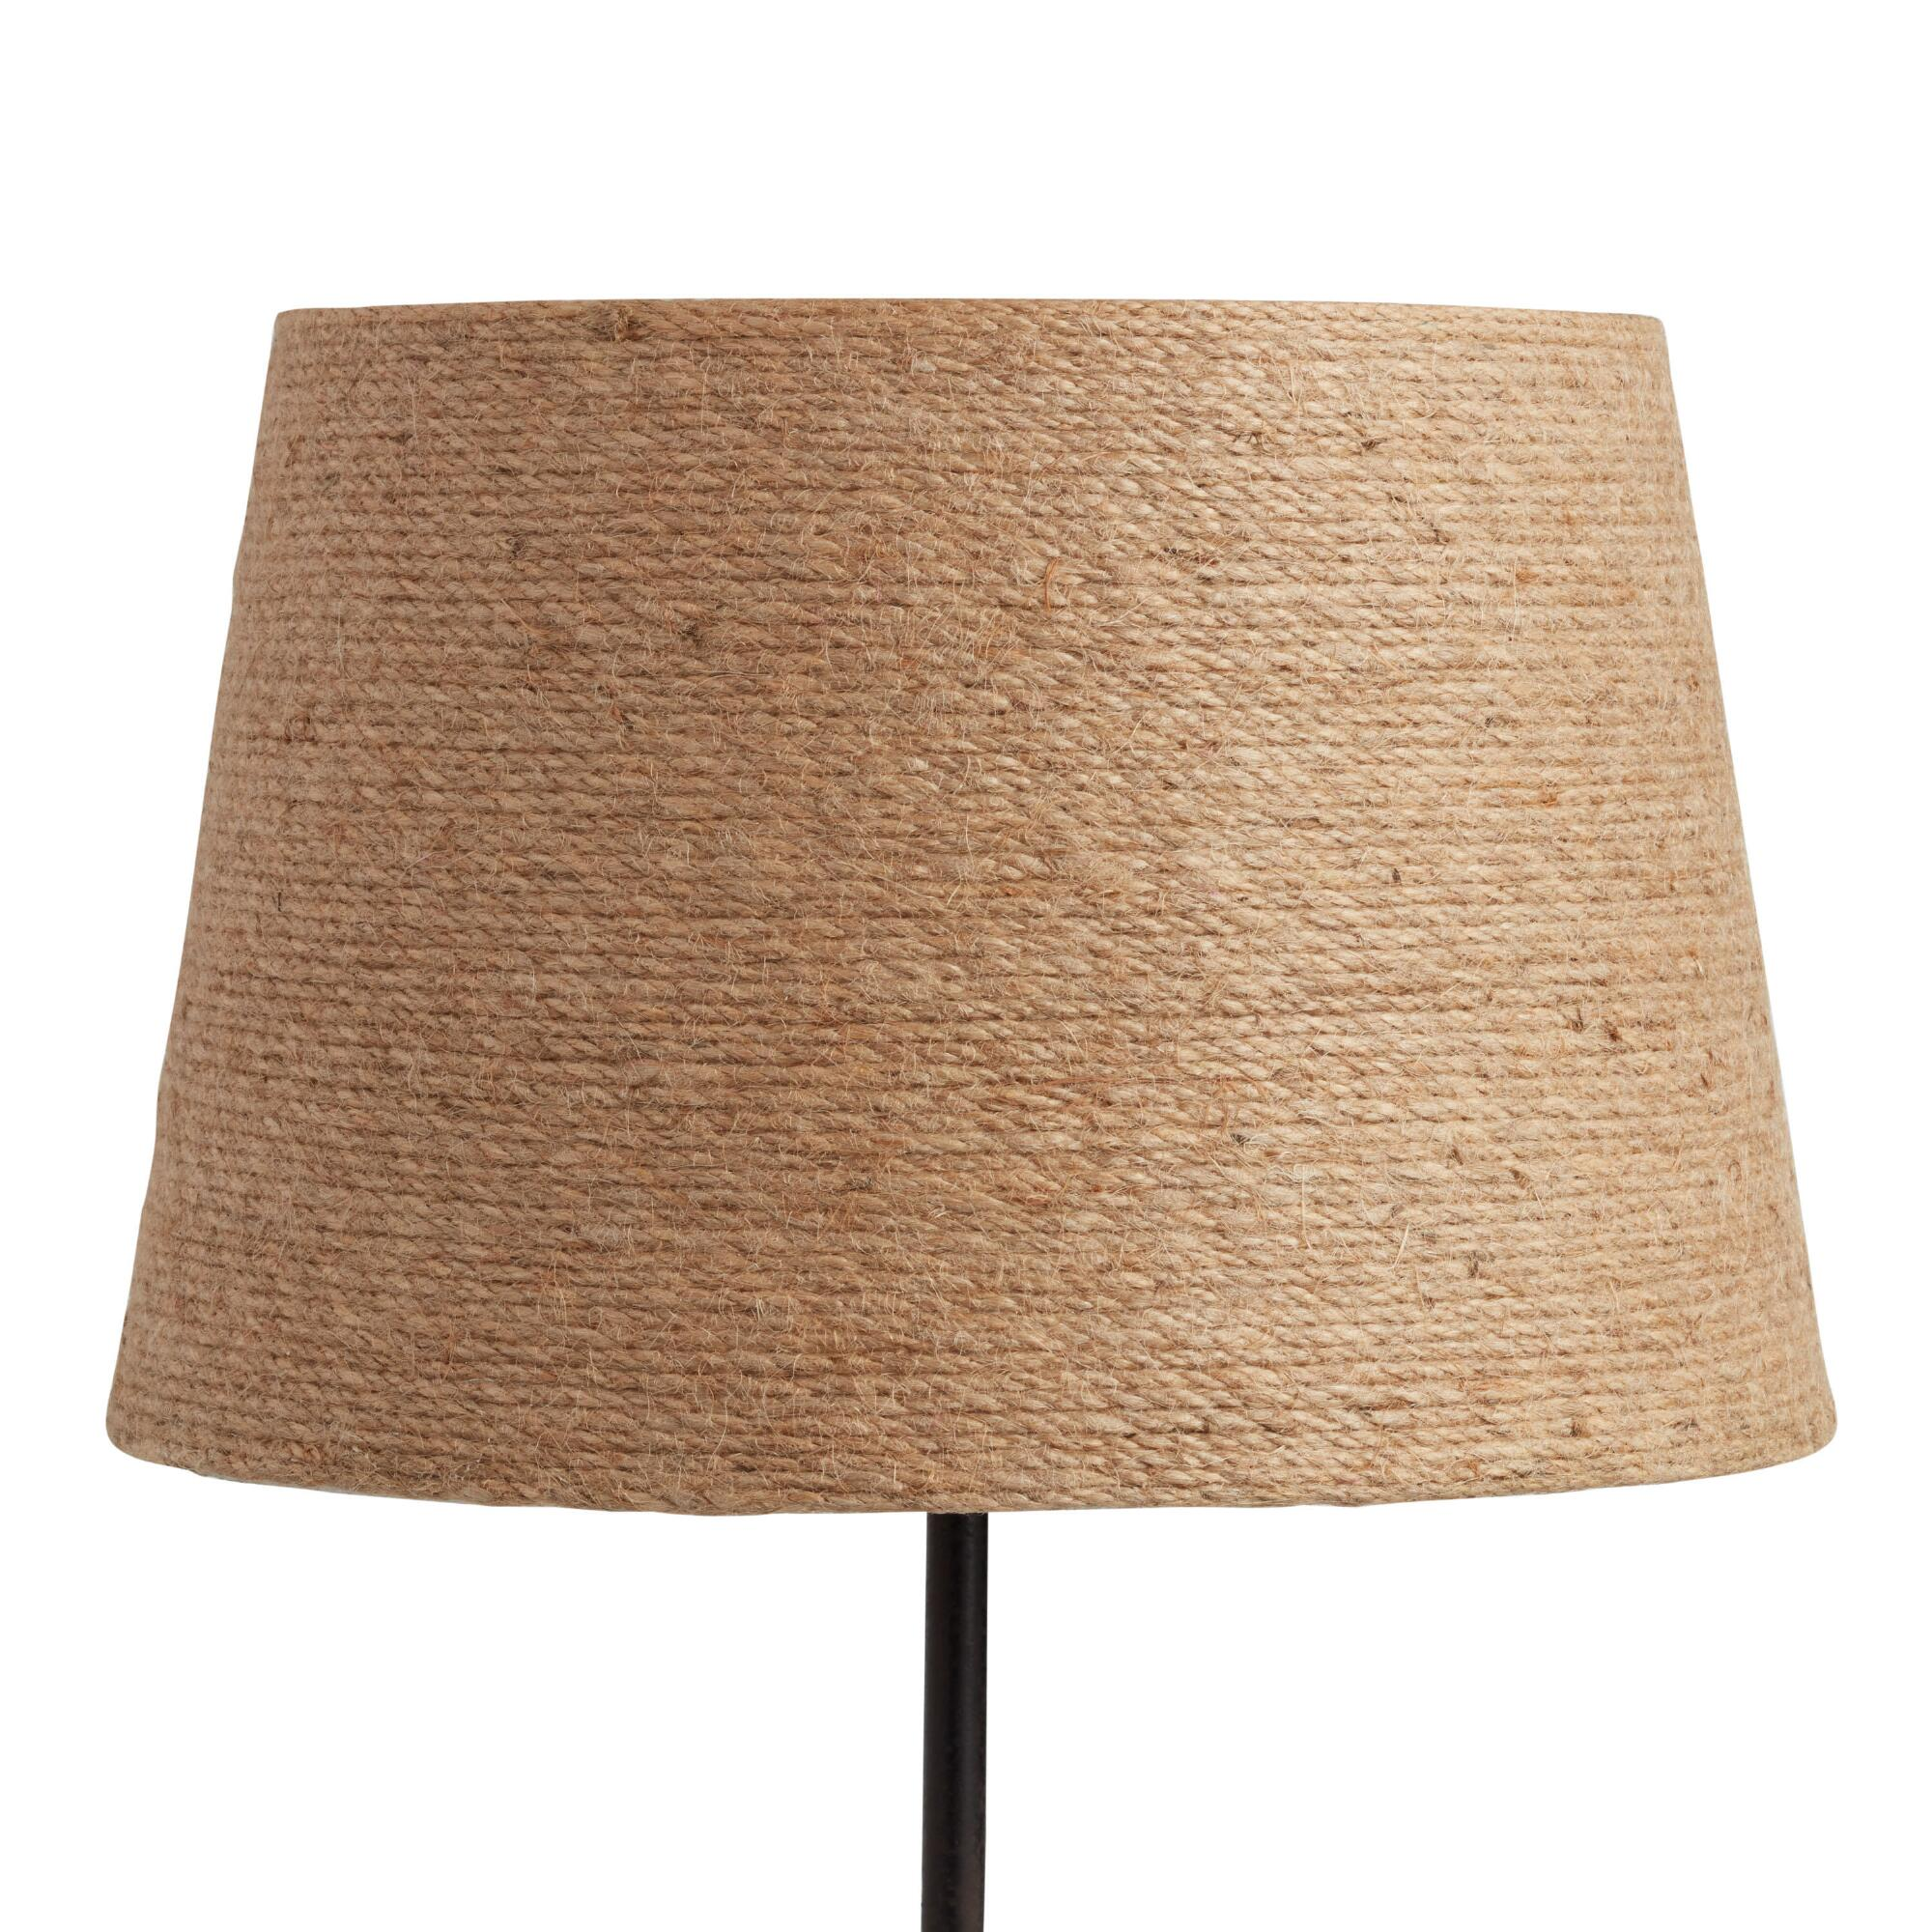 Twine-Wrapped Accent Lamp Shade by World Market